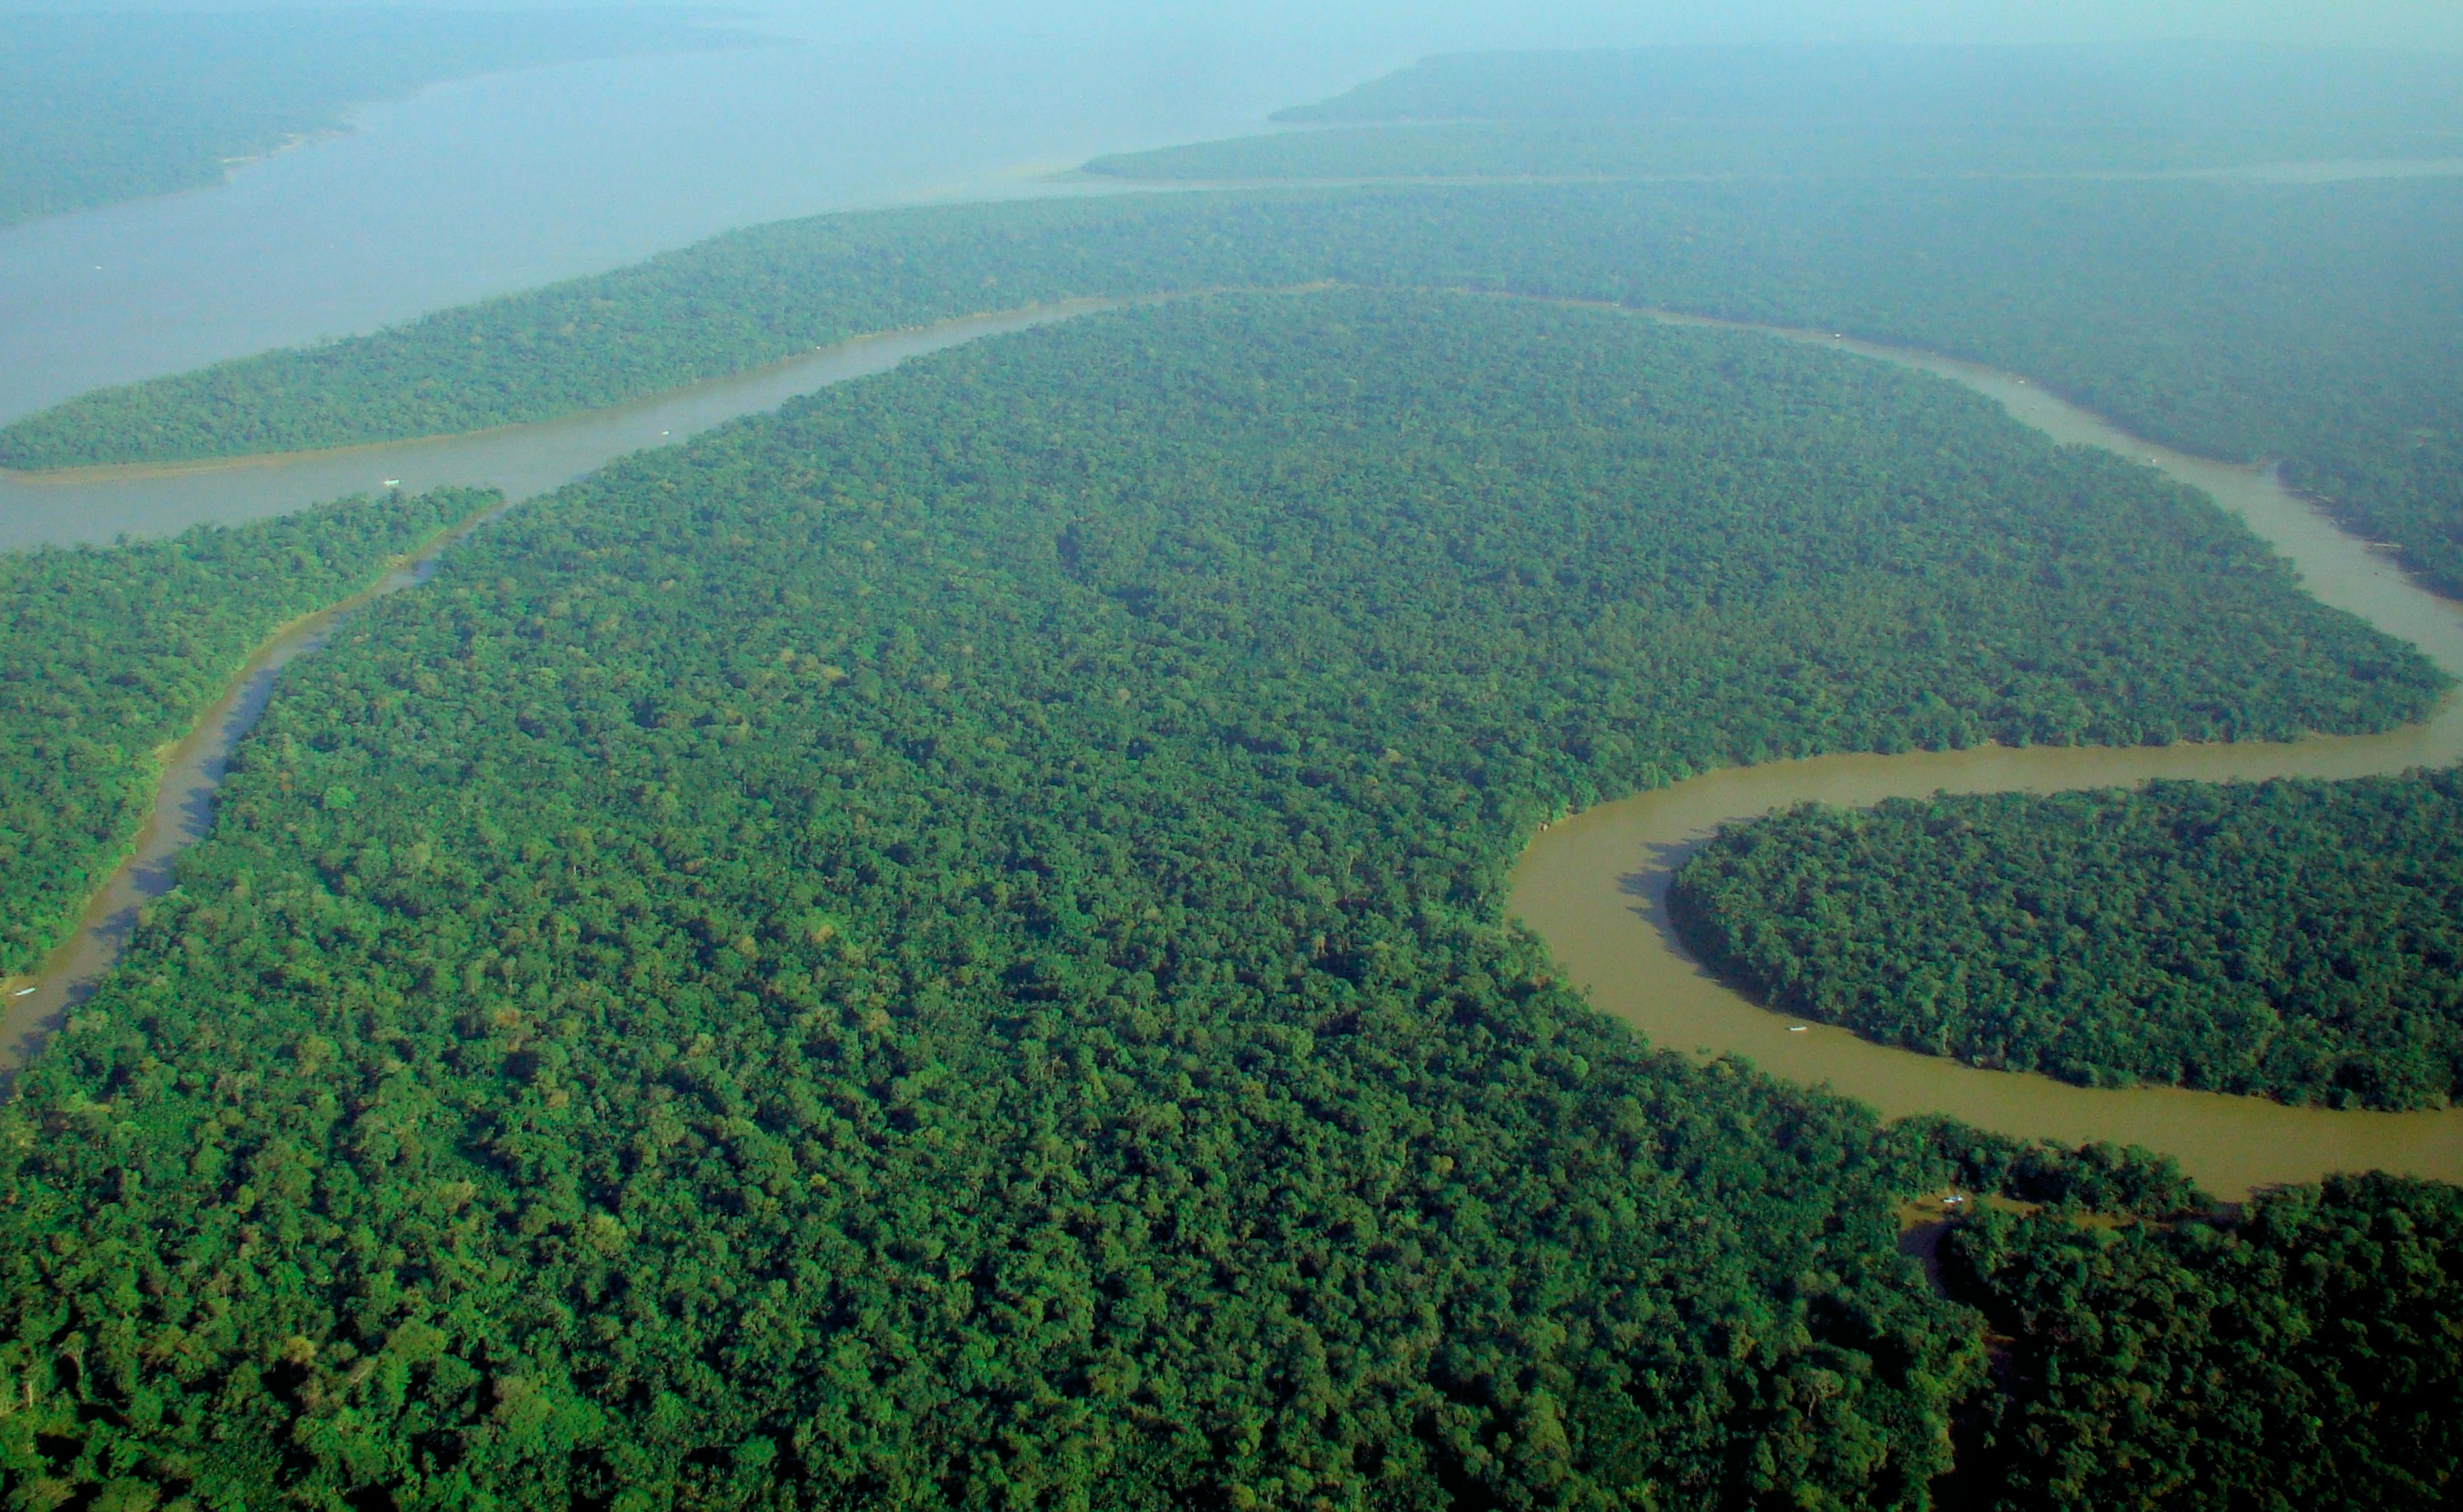 Global fund groups issue deforestation warning